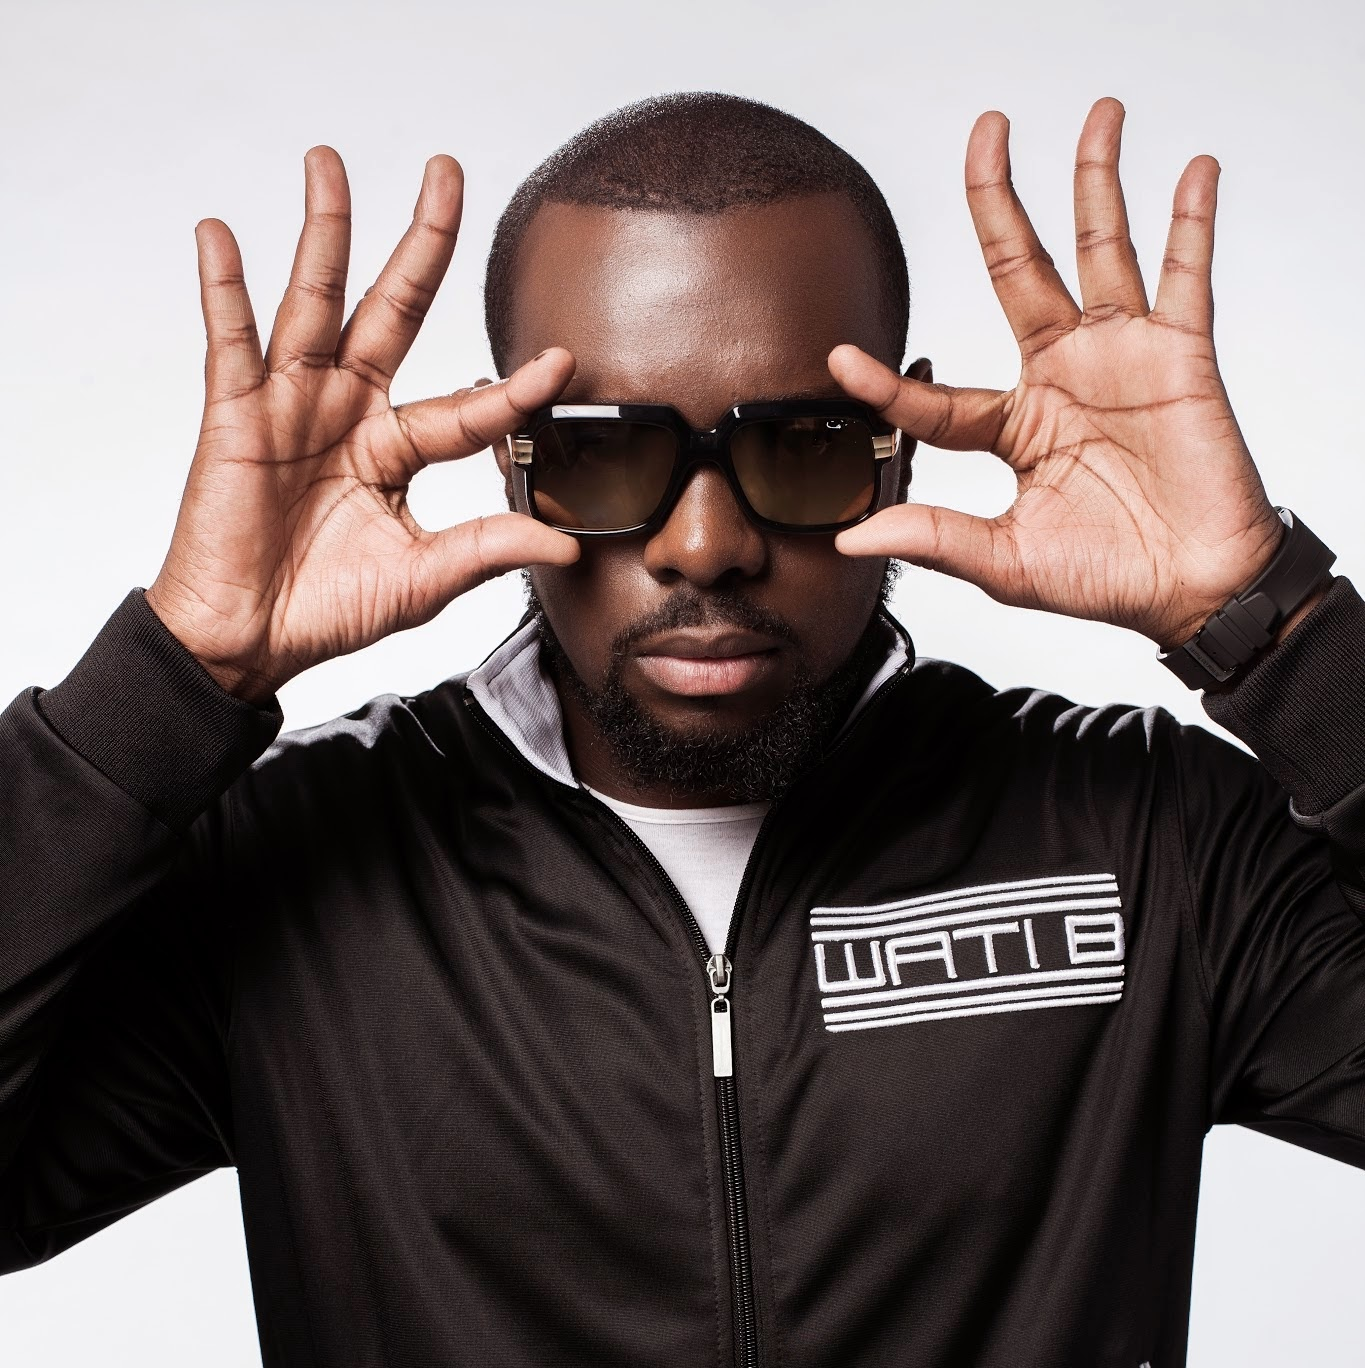 Maitre Gims net worth